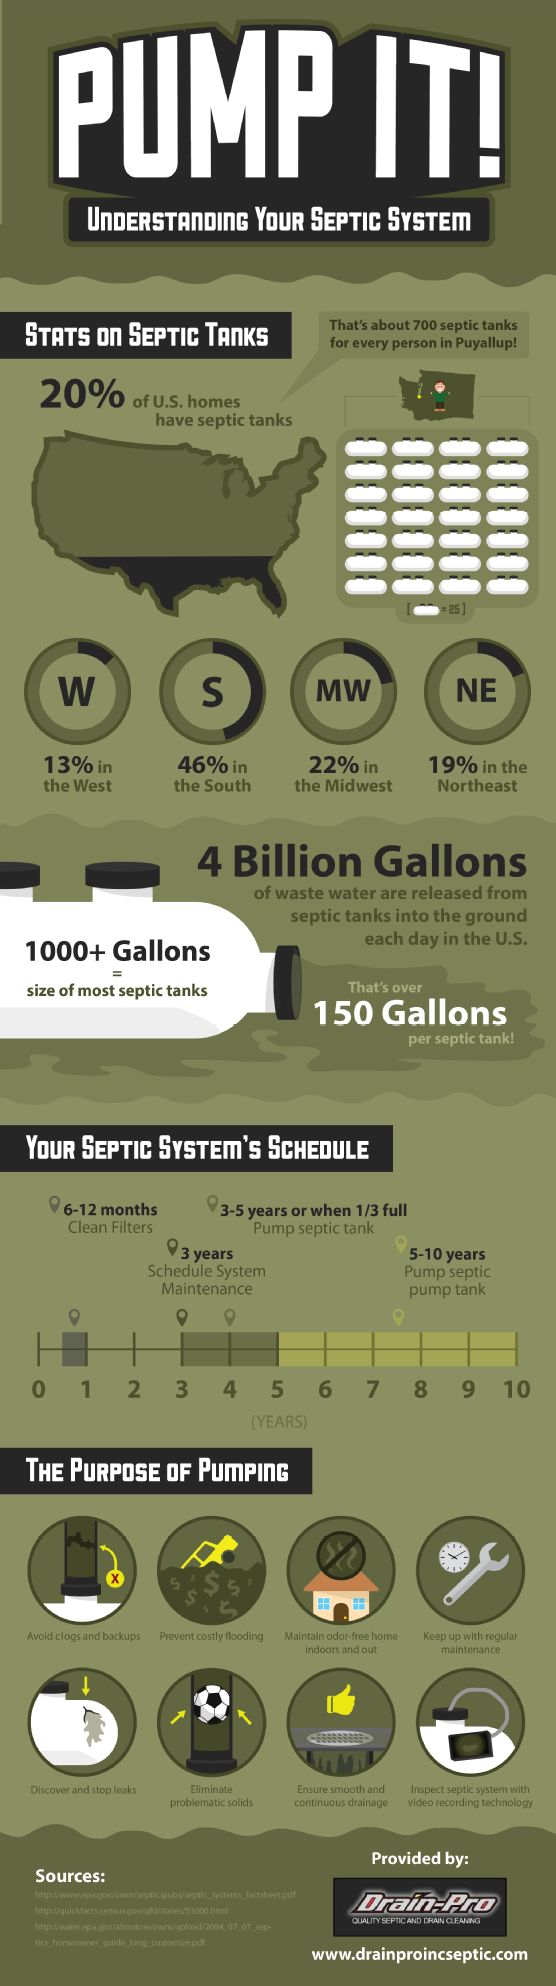 Each septic tank releases about 150 gallons of wastewater into the ground each day. In order to ensure that this wastewater goes to the right place, you should keep up with septic system maintenance. Check out this infographic from a septic pumping company in Puyallup to learn more. Source: http://www.drainproincseptic.com/651812/2013/02/25/pump-it%21-understanding-your-septic-system-.html